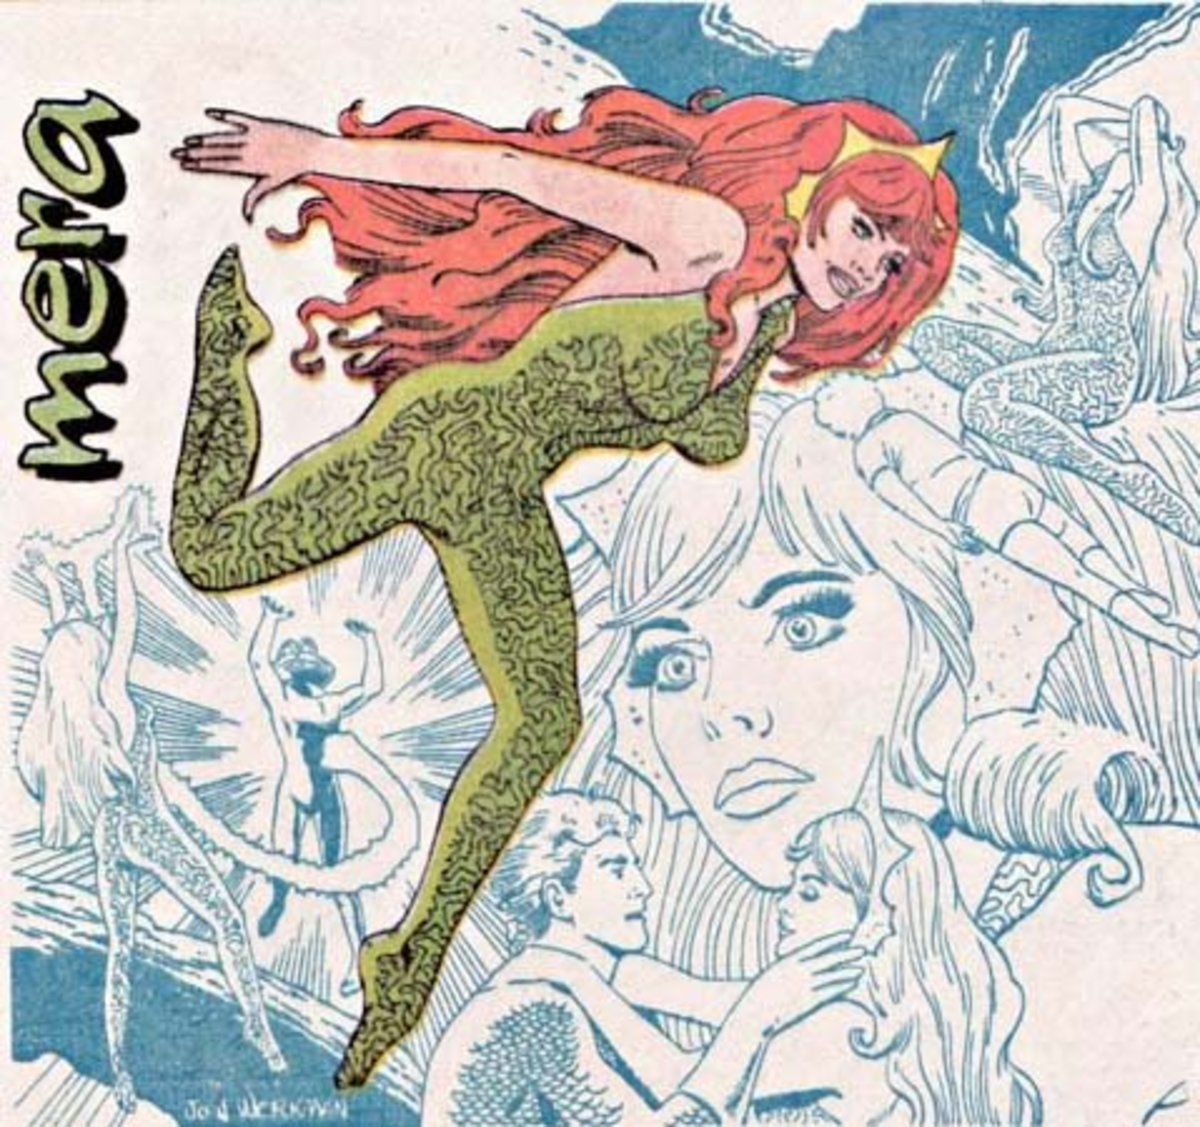 Here she is - Mera, wife of Aquaman, Queen of Atlantis